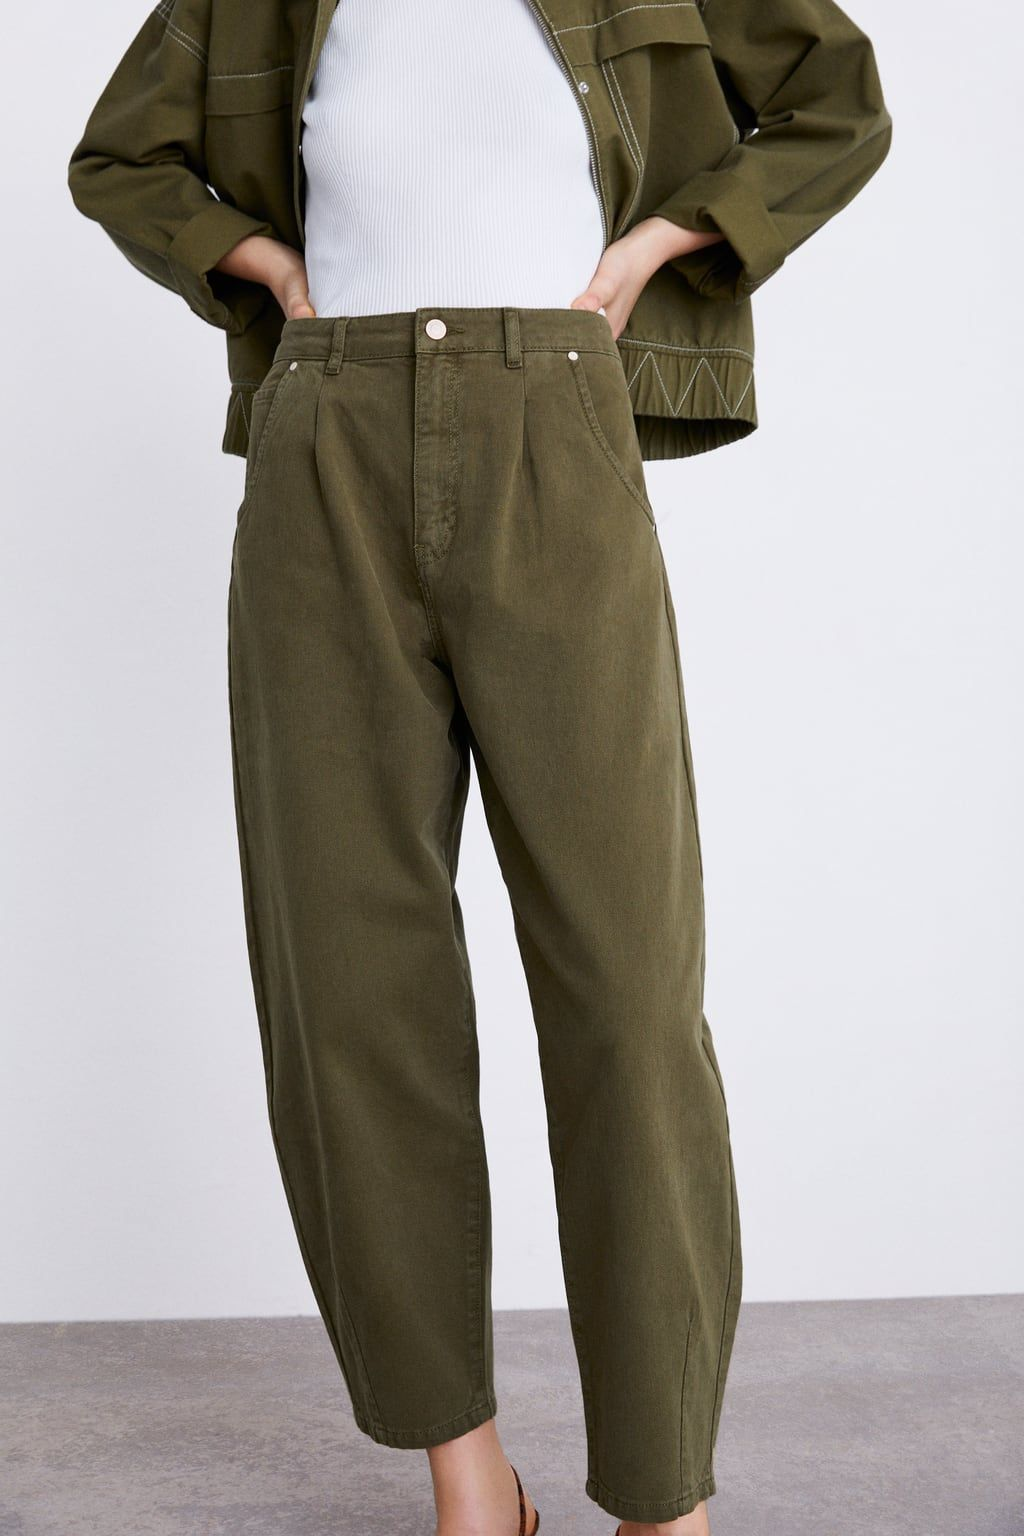 f9ce3760ae Z1975 slouchy darted jeans in 2019 | Fashion | Jeans, Shirt blouses ...